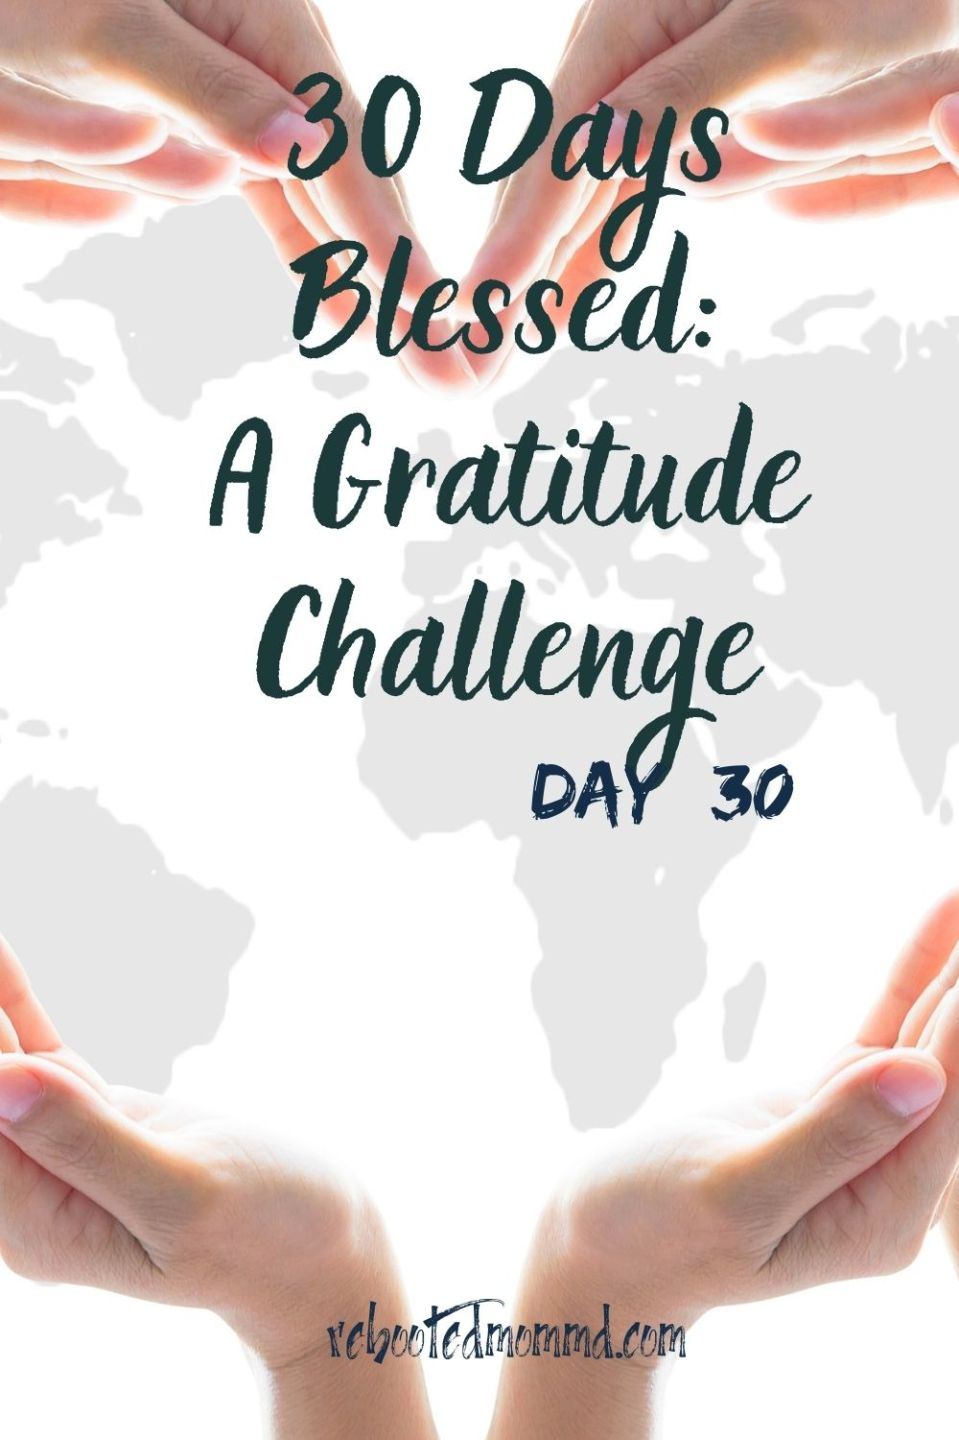 Day 30. Be Grateful for Friends